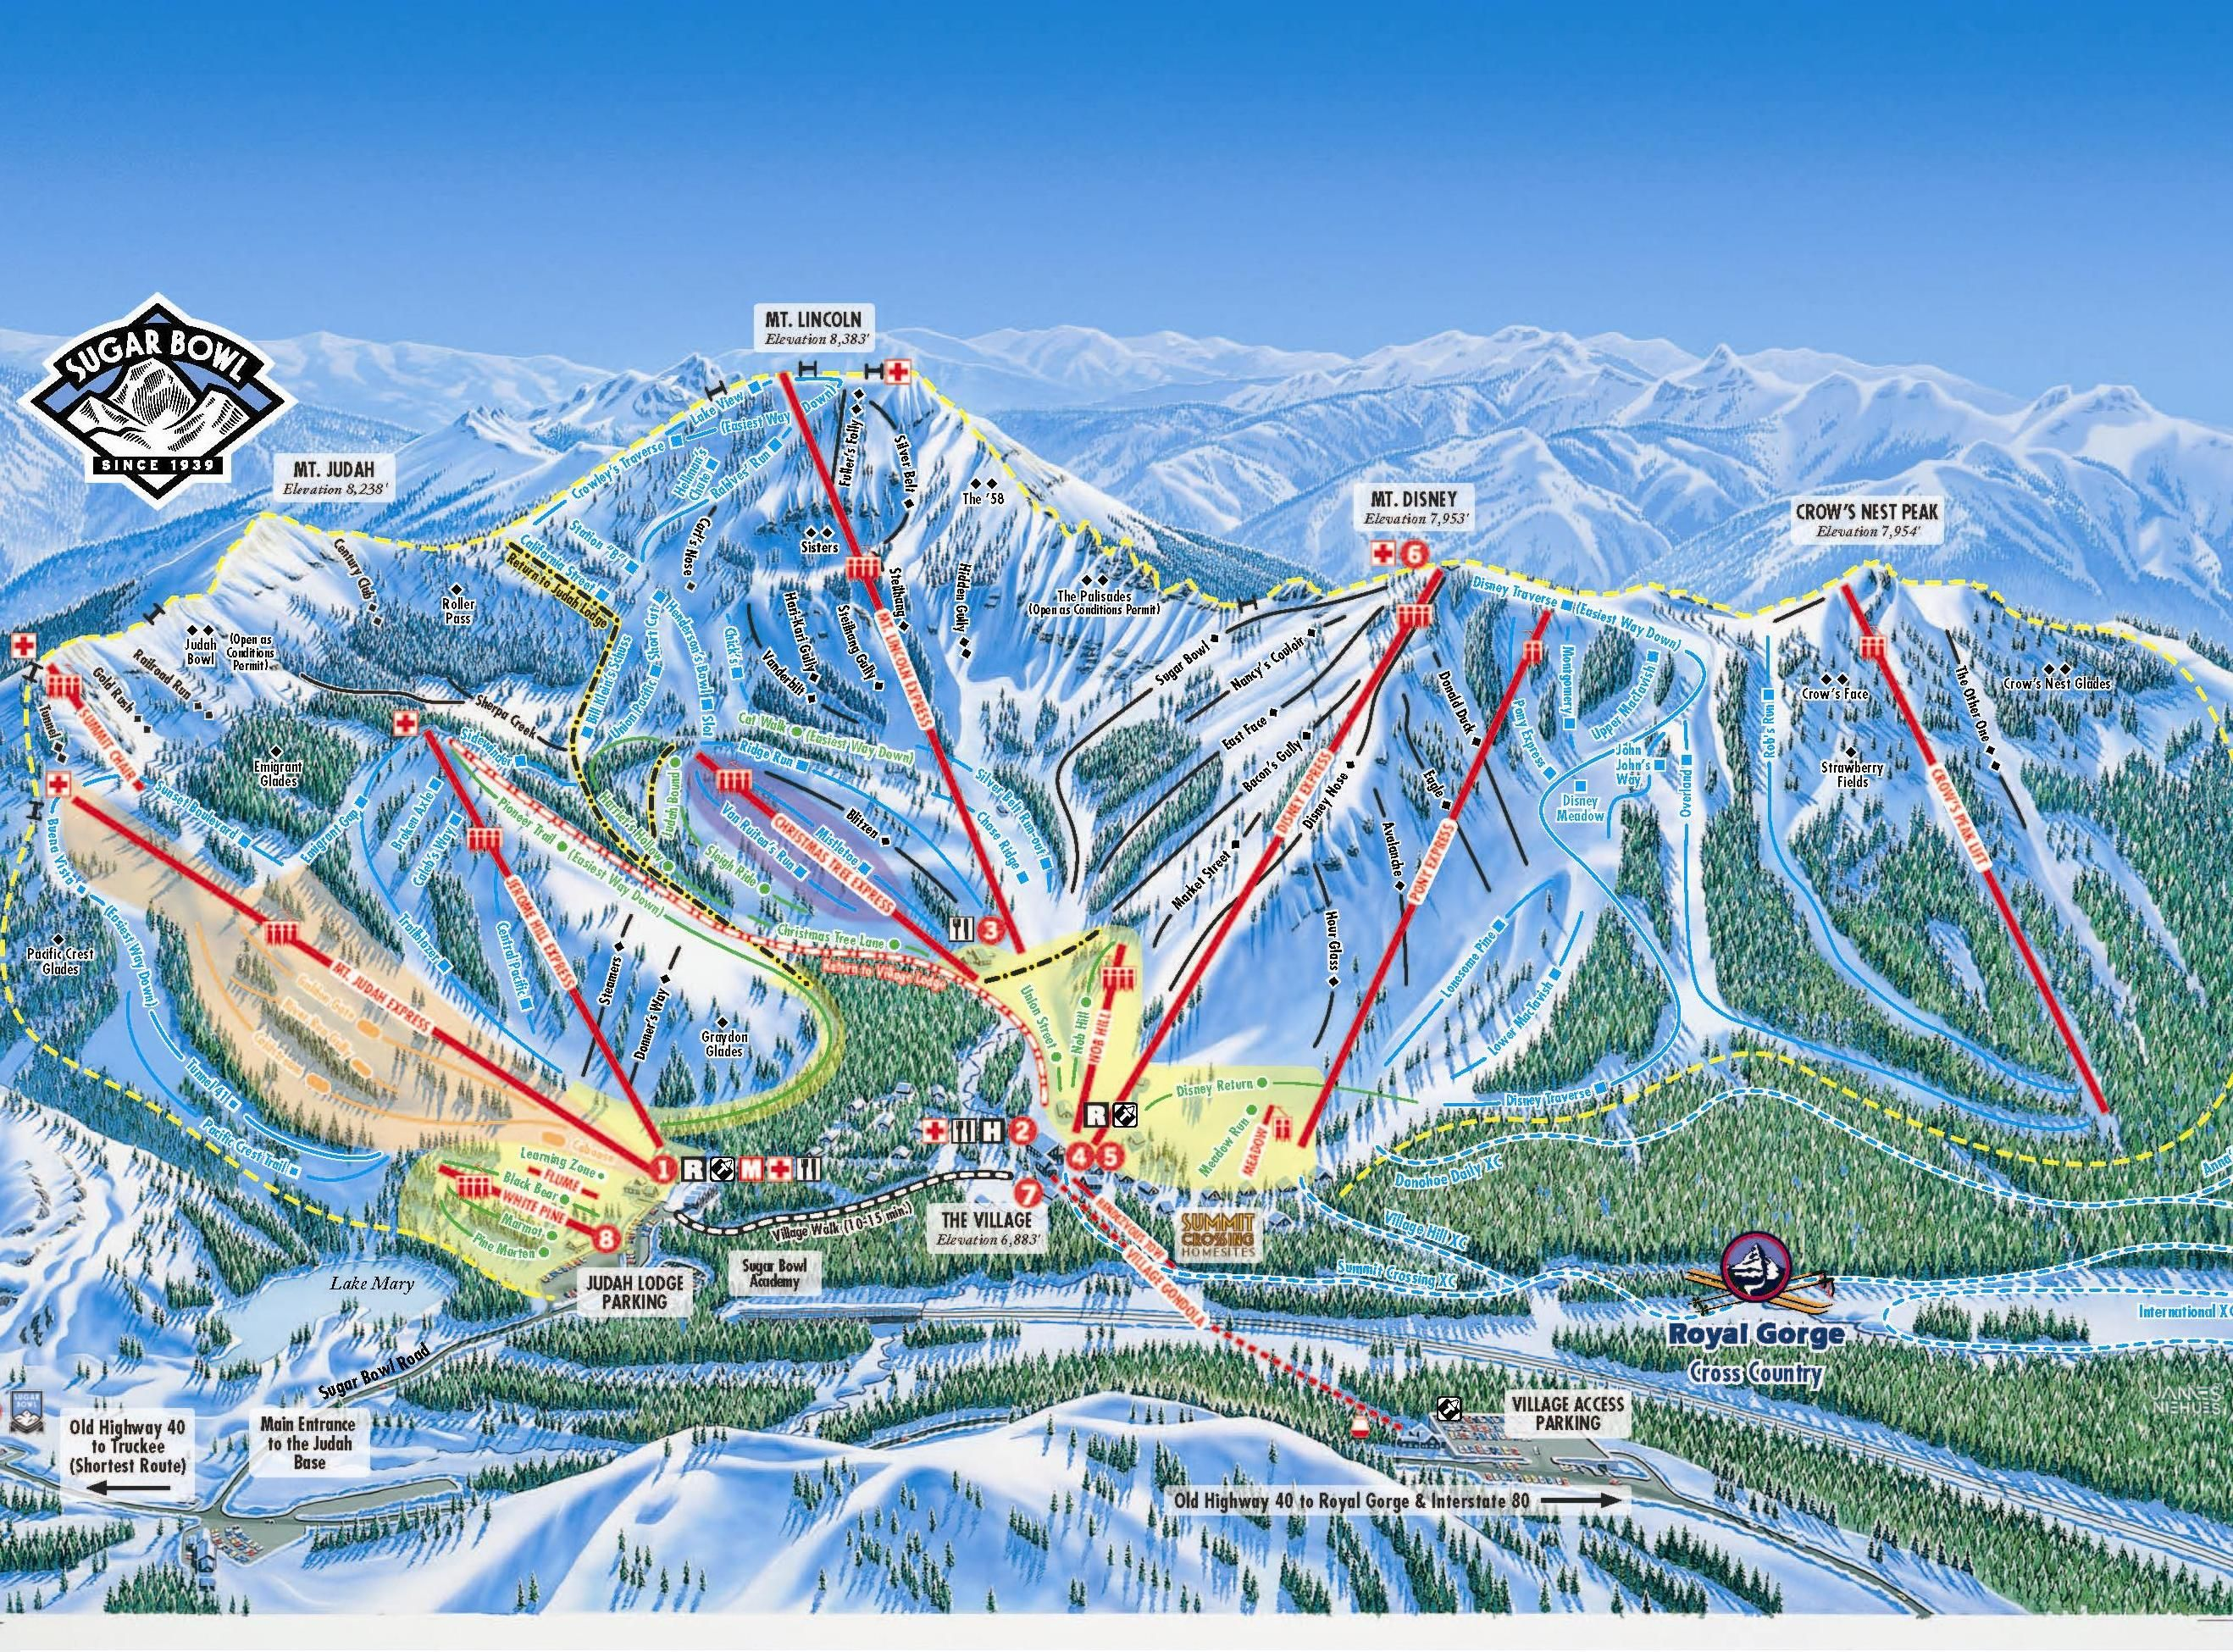 Sugar bowl resort map take me there pinterest resorts trail the trail map displaying information on lifts and runs the resort map showing information and location of our 2 lodges the royal gorge cross country map sciox Image collections